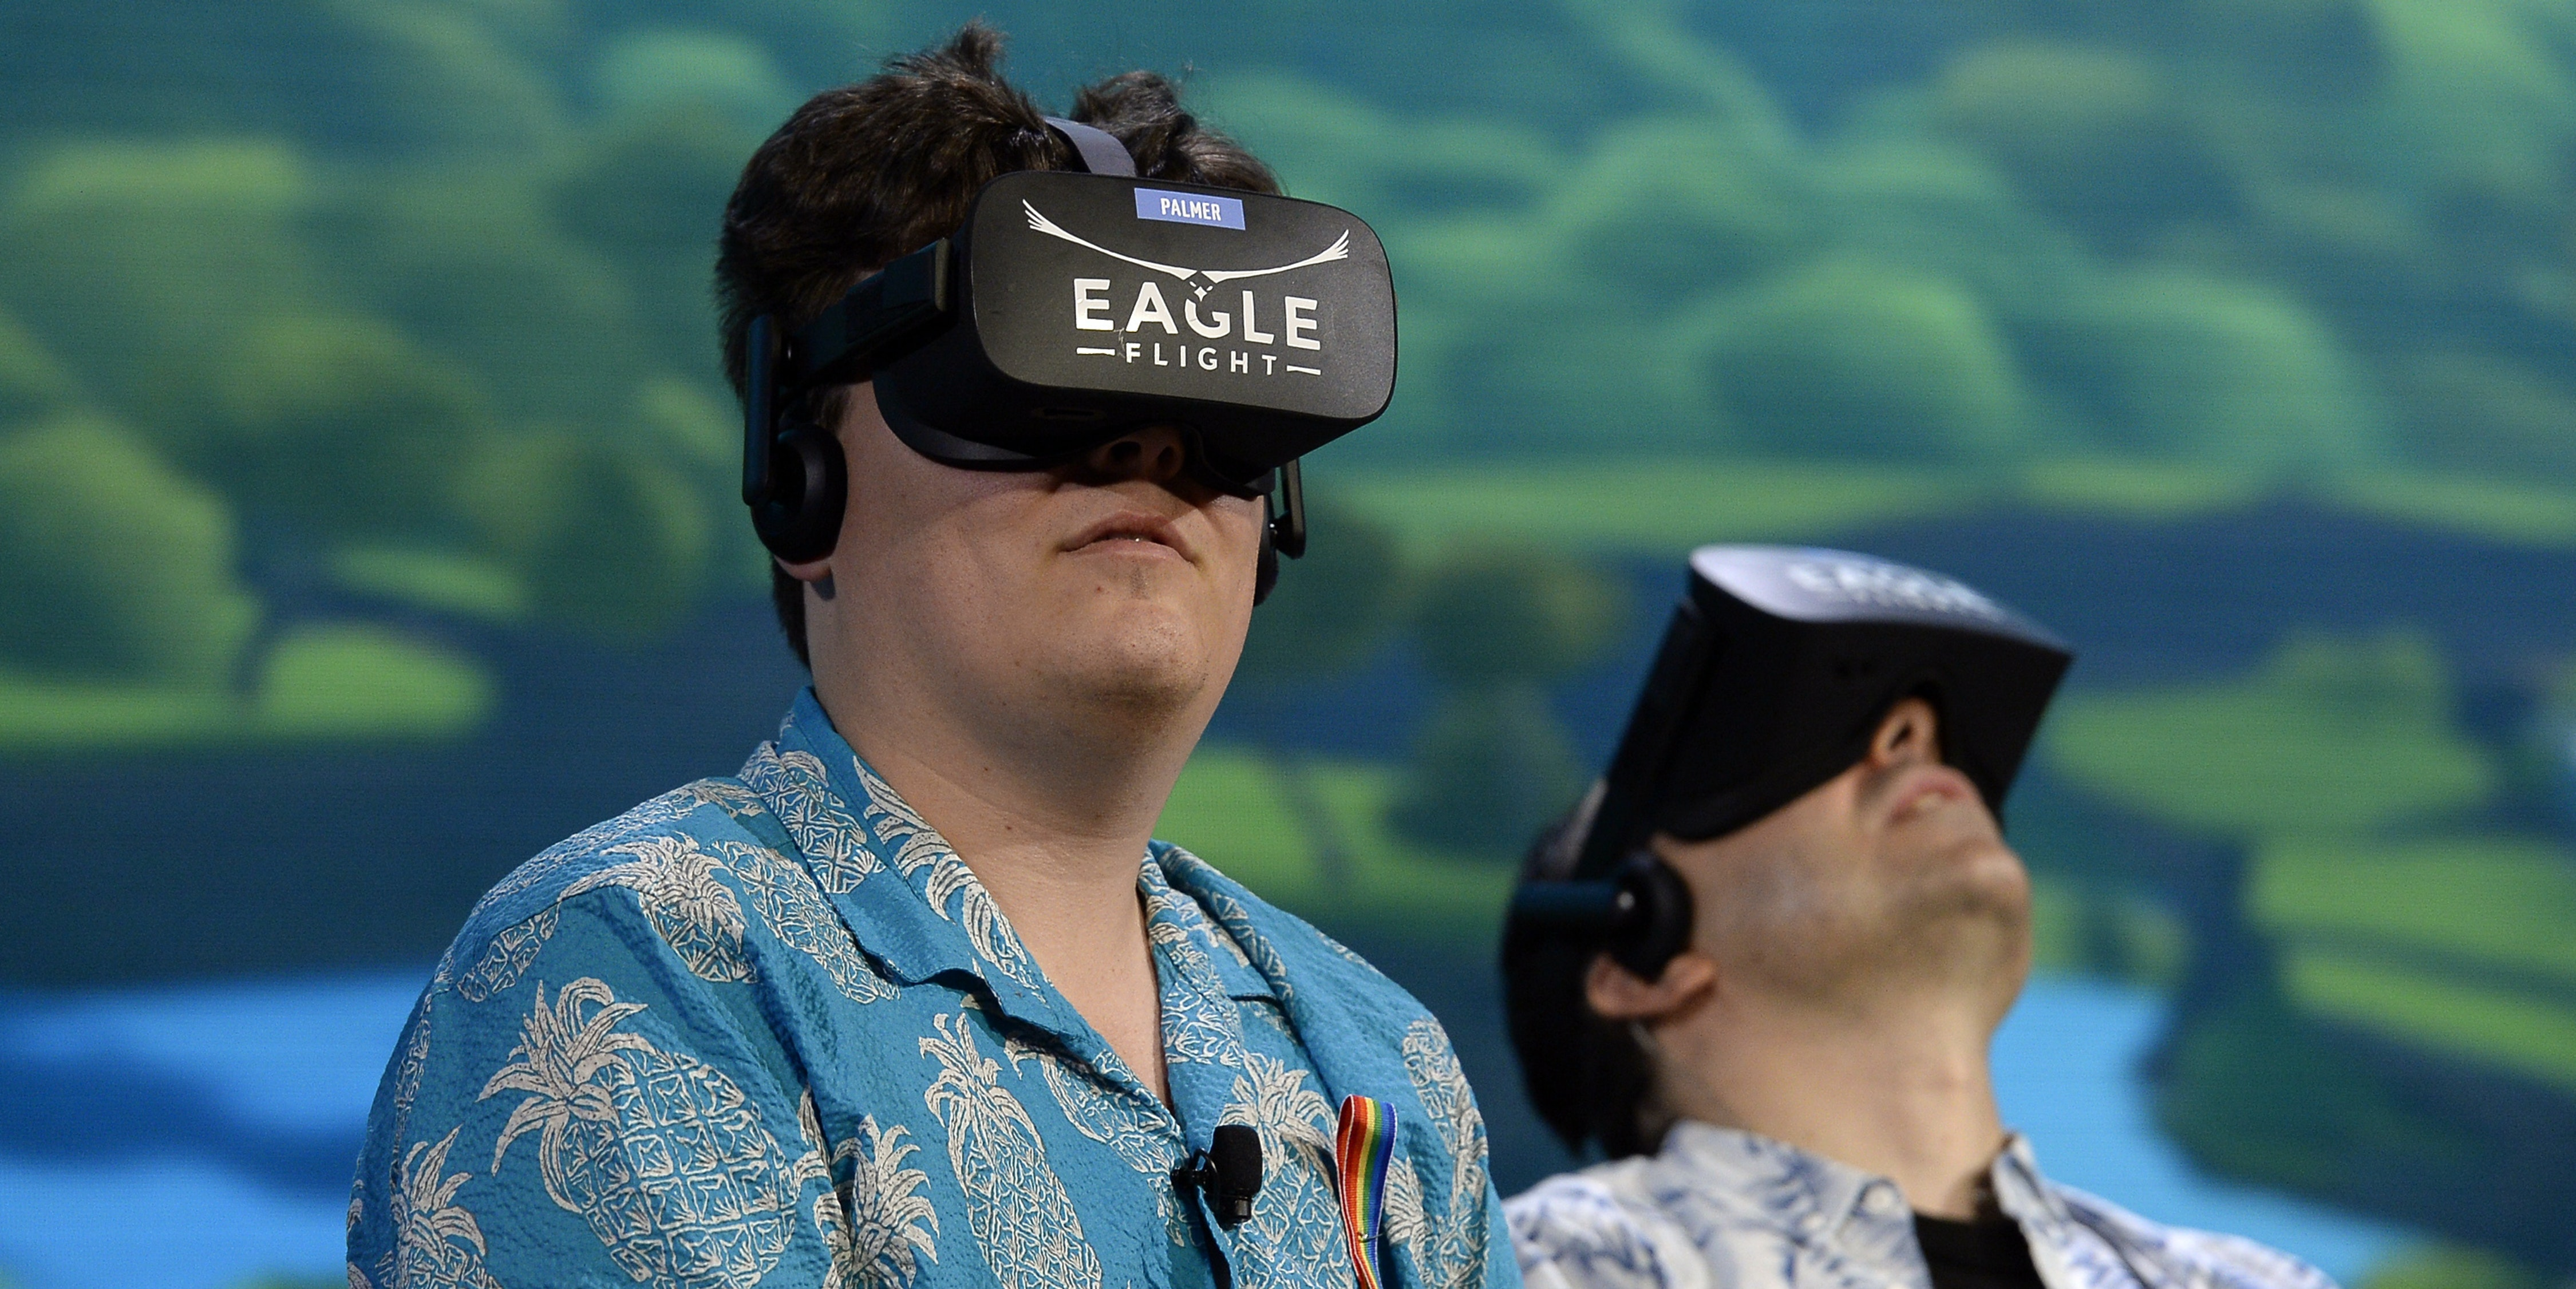 Palmer Luckey, co-founder of Oculus VR Inc., left, plays the new video game 'Eagle Flight VR' during an Ubisoft news conference before the start of the E3 Gaming Conference on June 13, 2016 in Los Angeles, California.